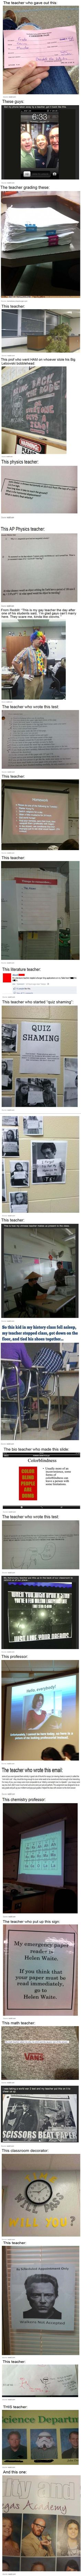 Teachers Who Got the Last Laugh---a little teacher humor lol.some a little more extreme than others lol